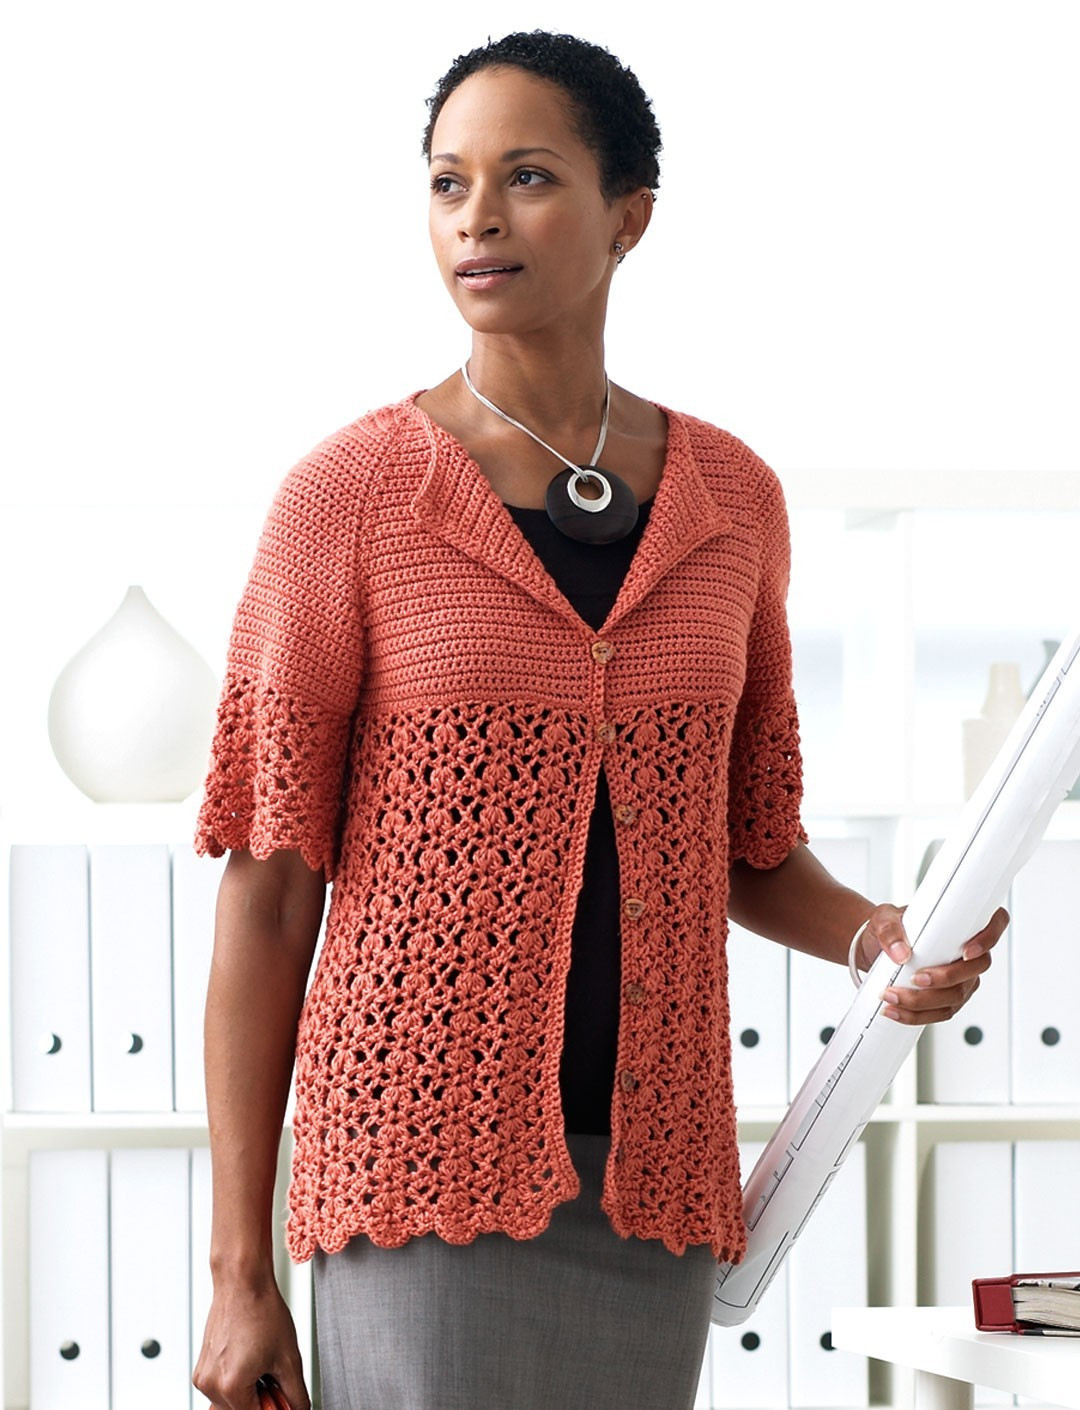 Crochet Cardigan Sweater Inspirational Crochet Cardigan In Patons Silk Bamboo Of Luxury 41 Ideas Crochet Cardigan Sweater